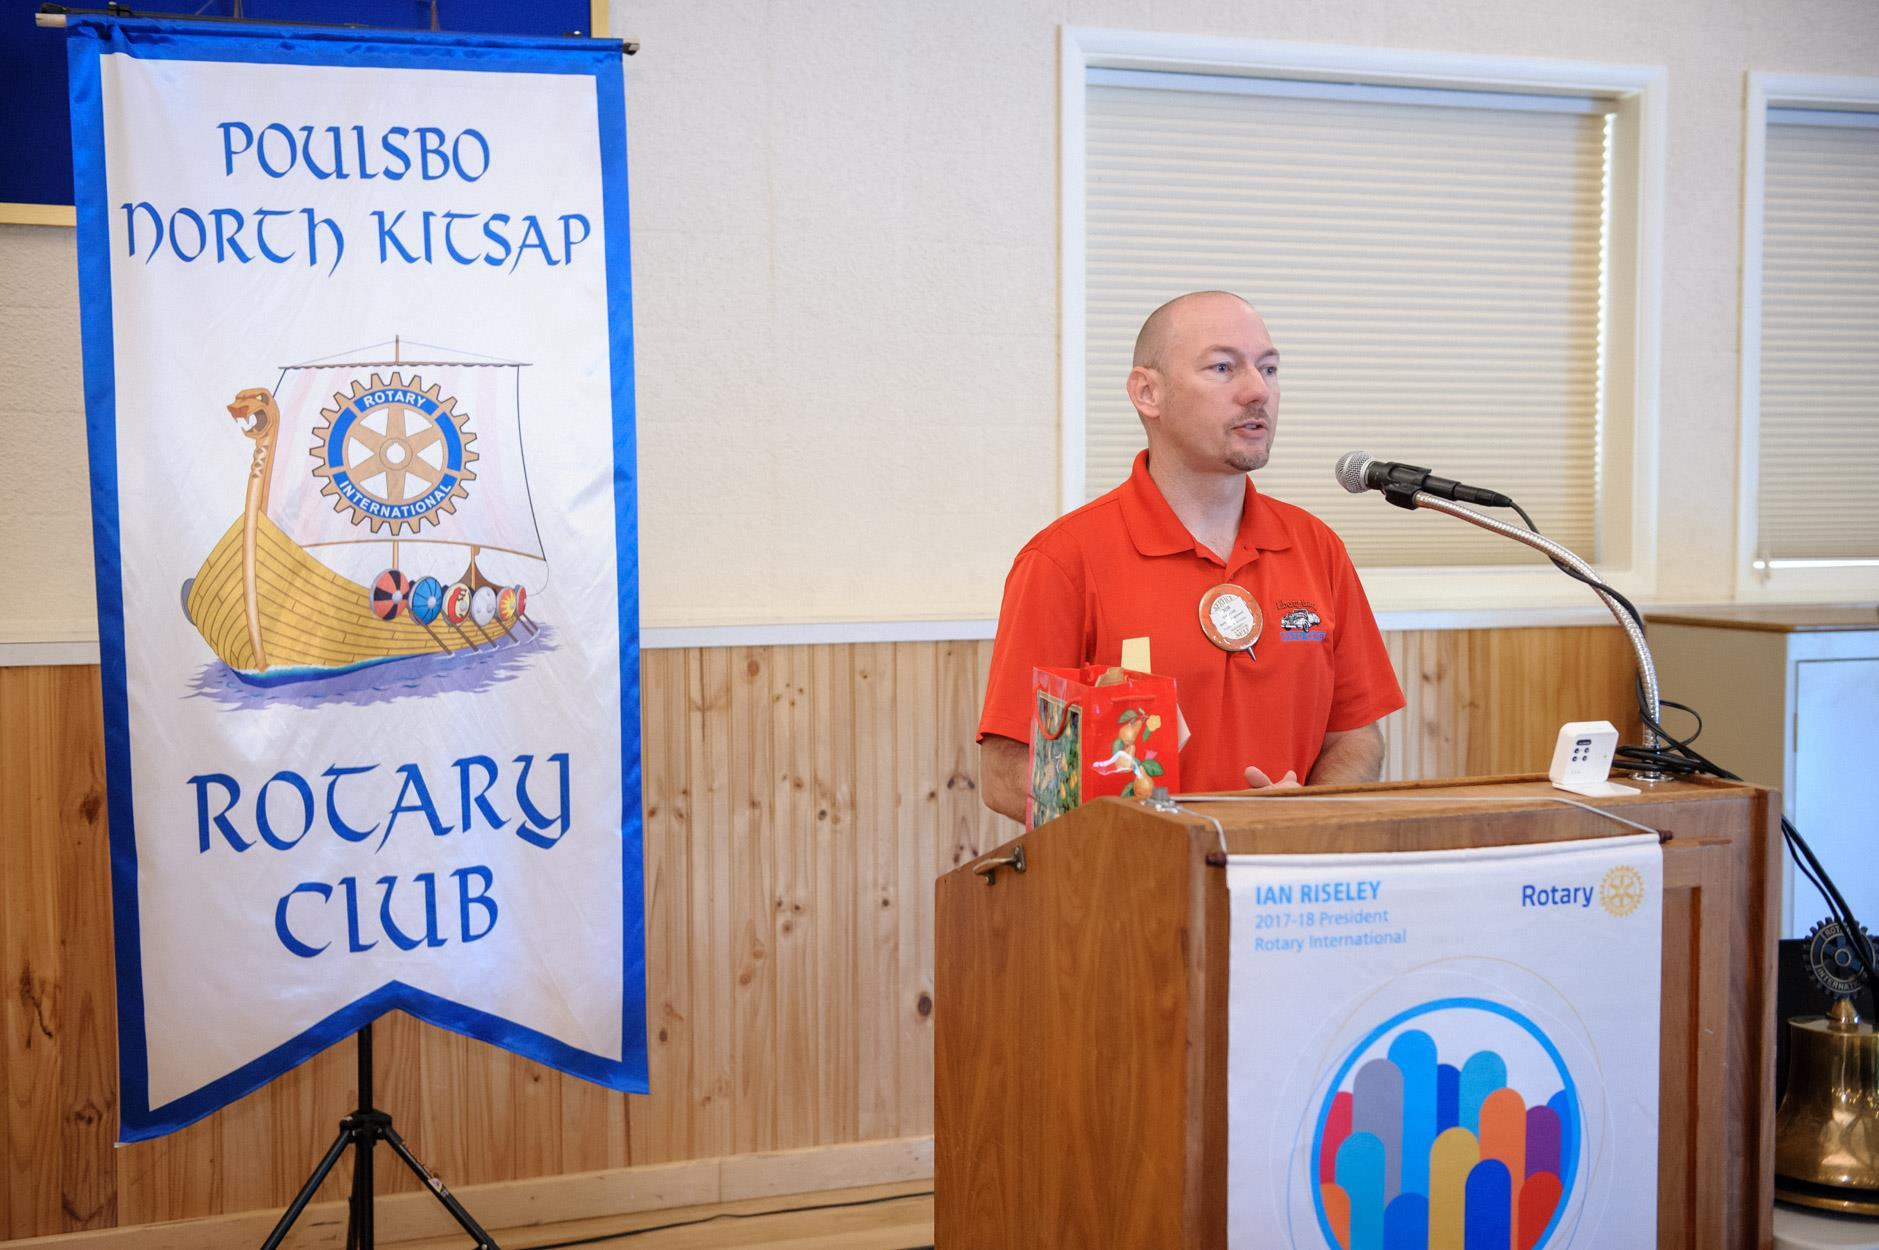 Bob Hill Classification Talk | Rotary Club of Poulsbo ...